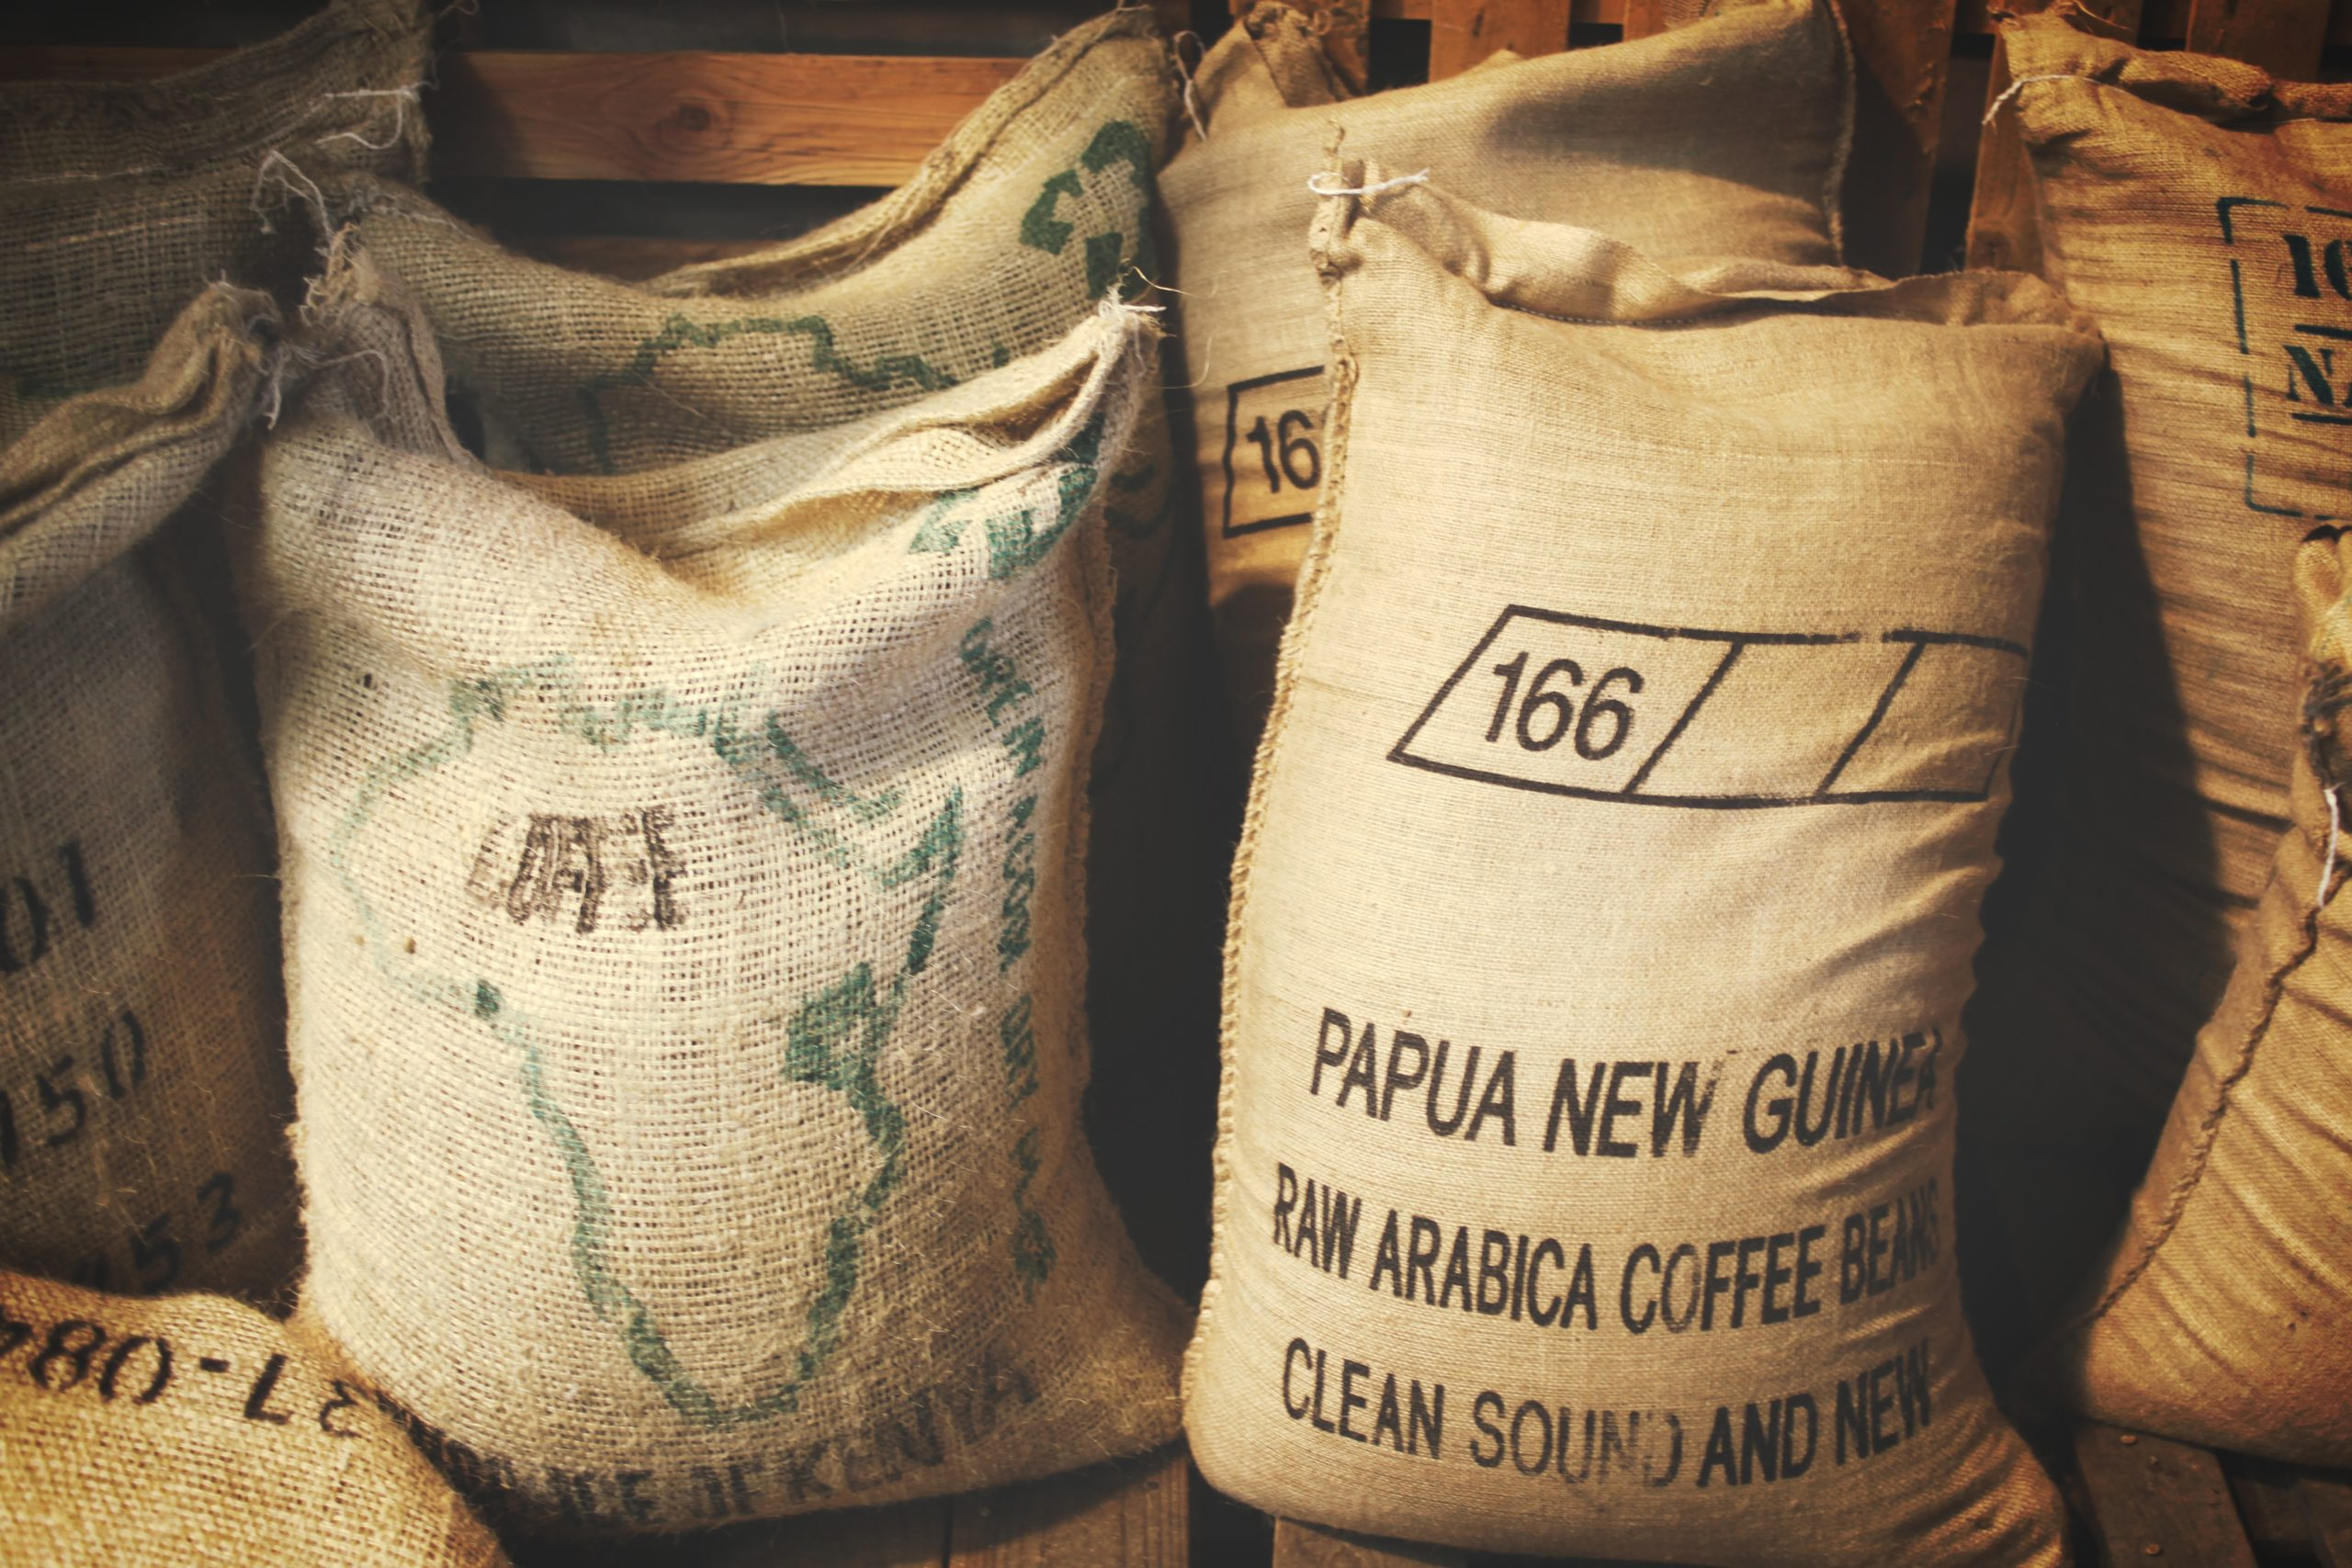 Bags of coffee beans from Papua New Guinea